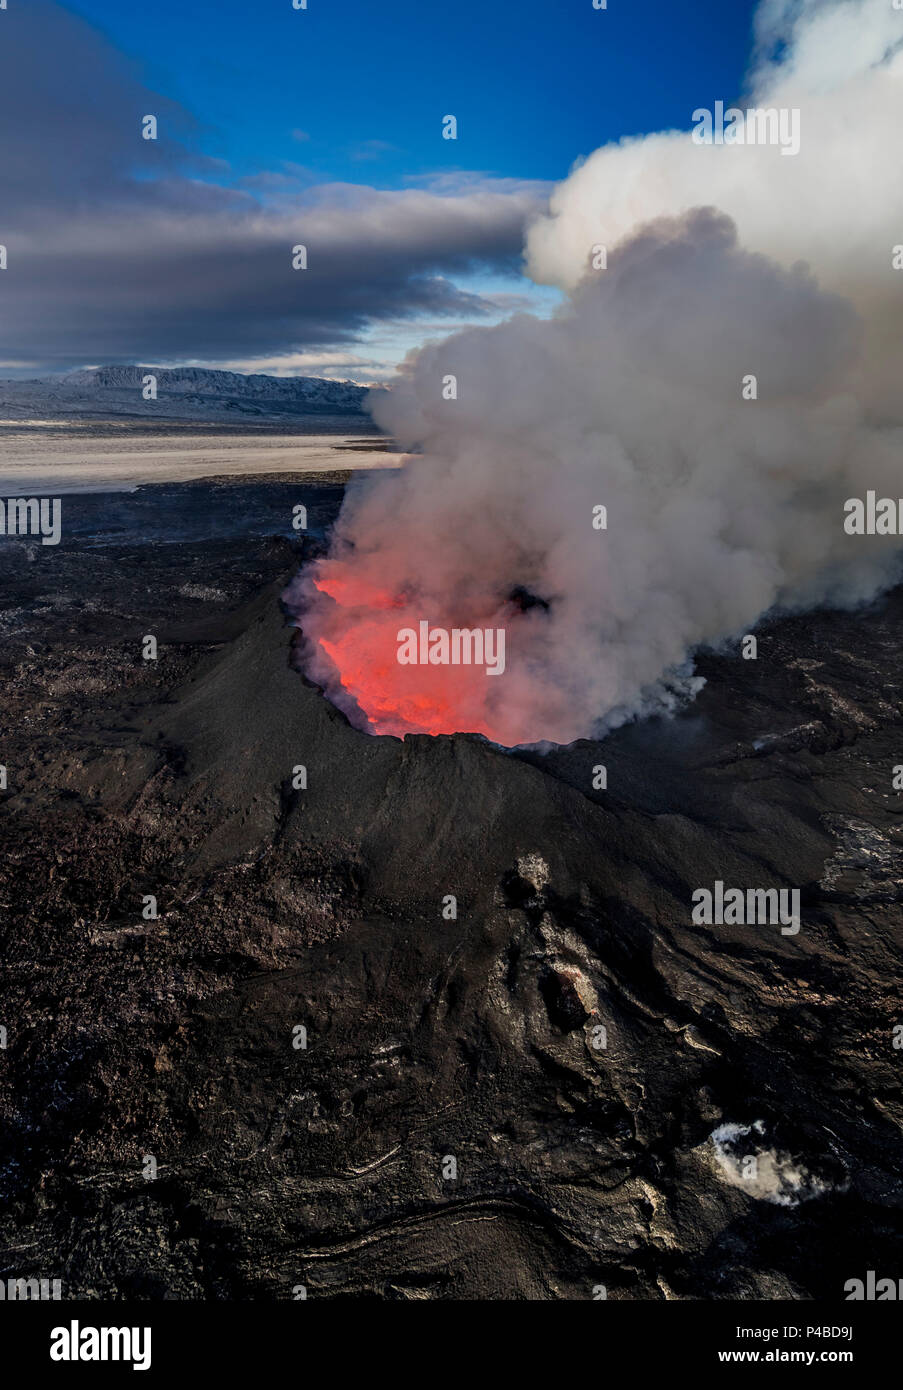 August 29, 2014, a fissure eruption occurred in Holuhraun at the northern end of a magma intrusion which had moved progressively north, from the Bardarbunga volcano. Bardarbunga is a stratovolcano located under Vatnajokull, Iceland's most extensive glacier. Picture Date-Sept. 28, 2014 - Stock Image